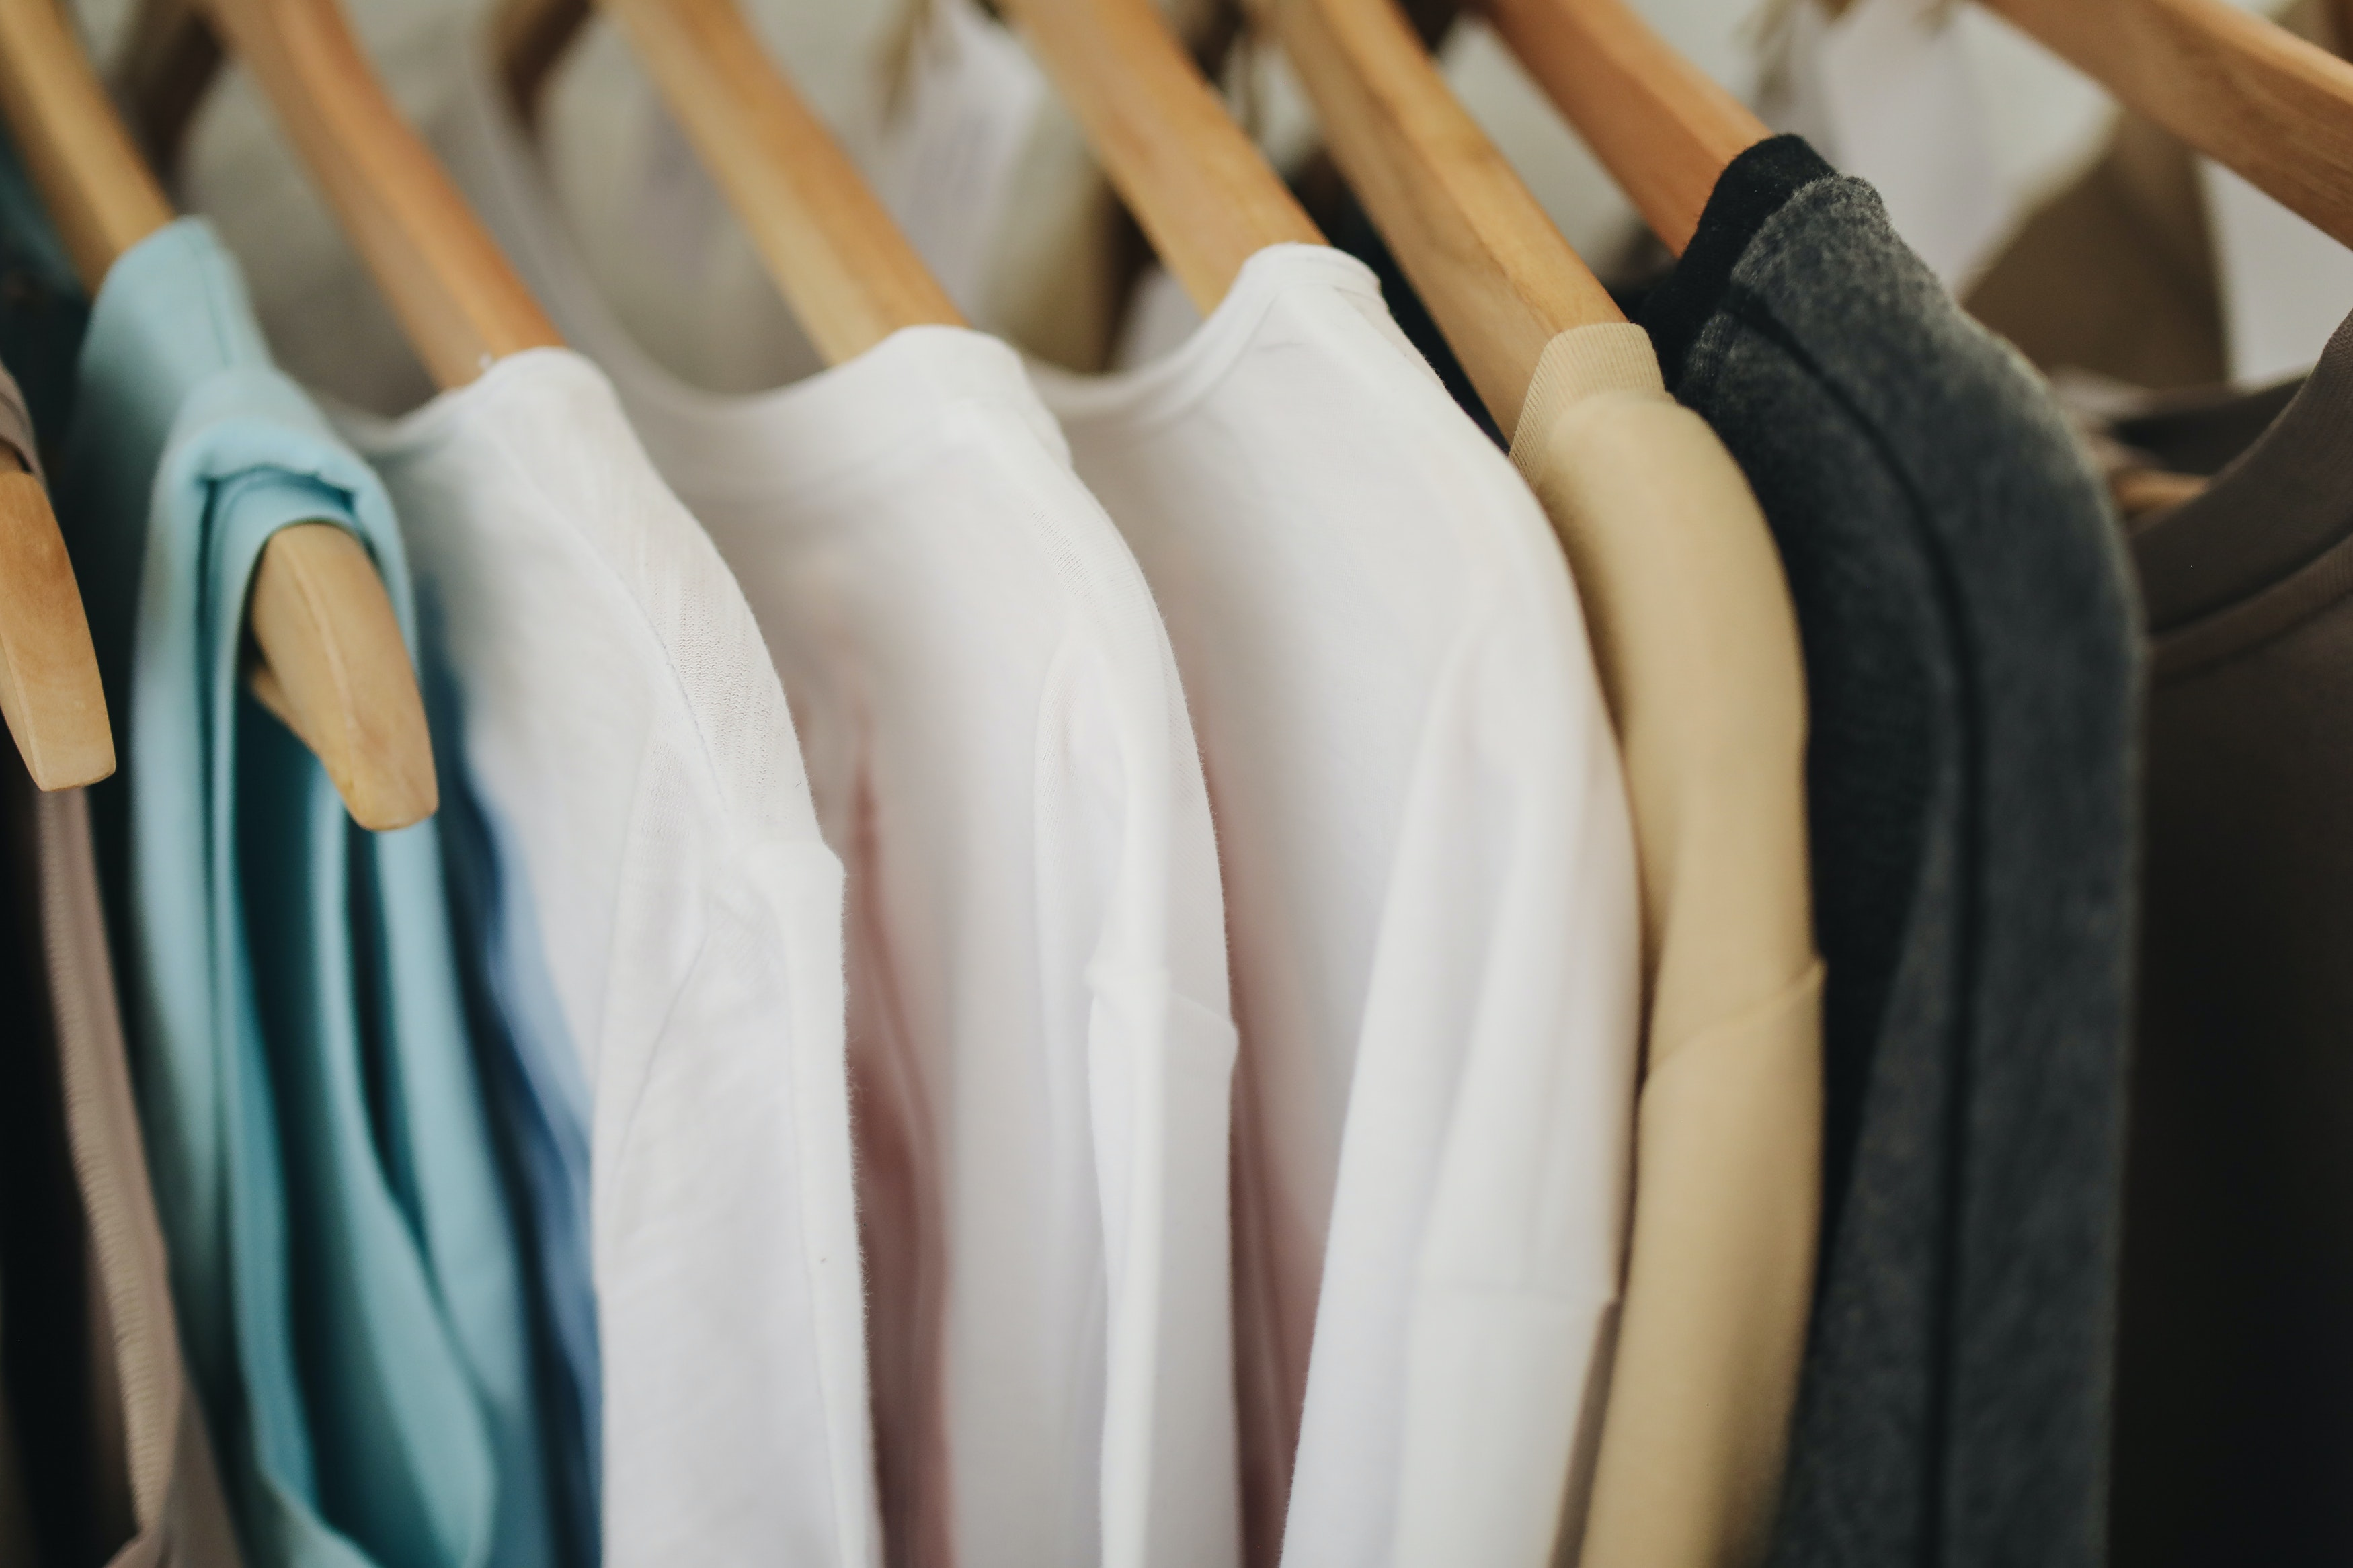 white-long-sleeves-shirts-on-brown-wooden-clothes-hanger-3735641